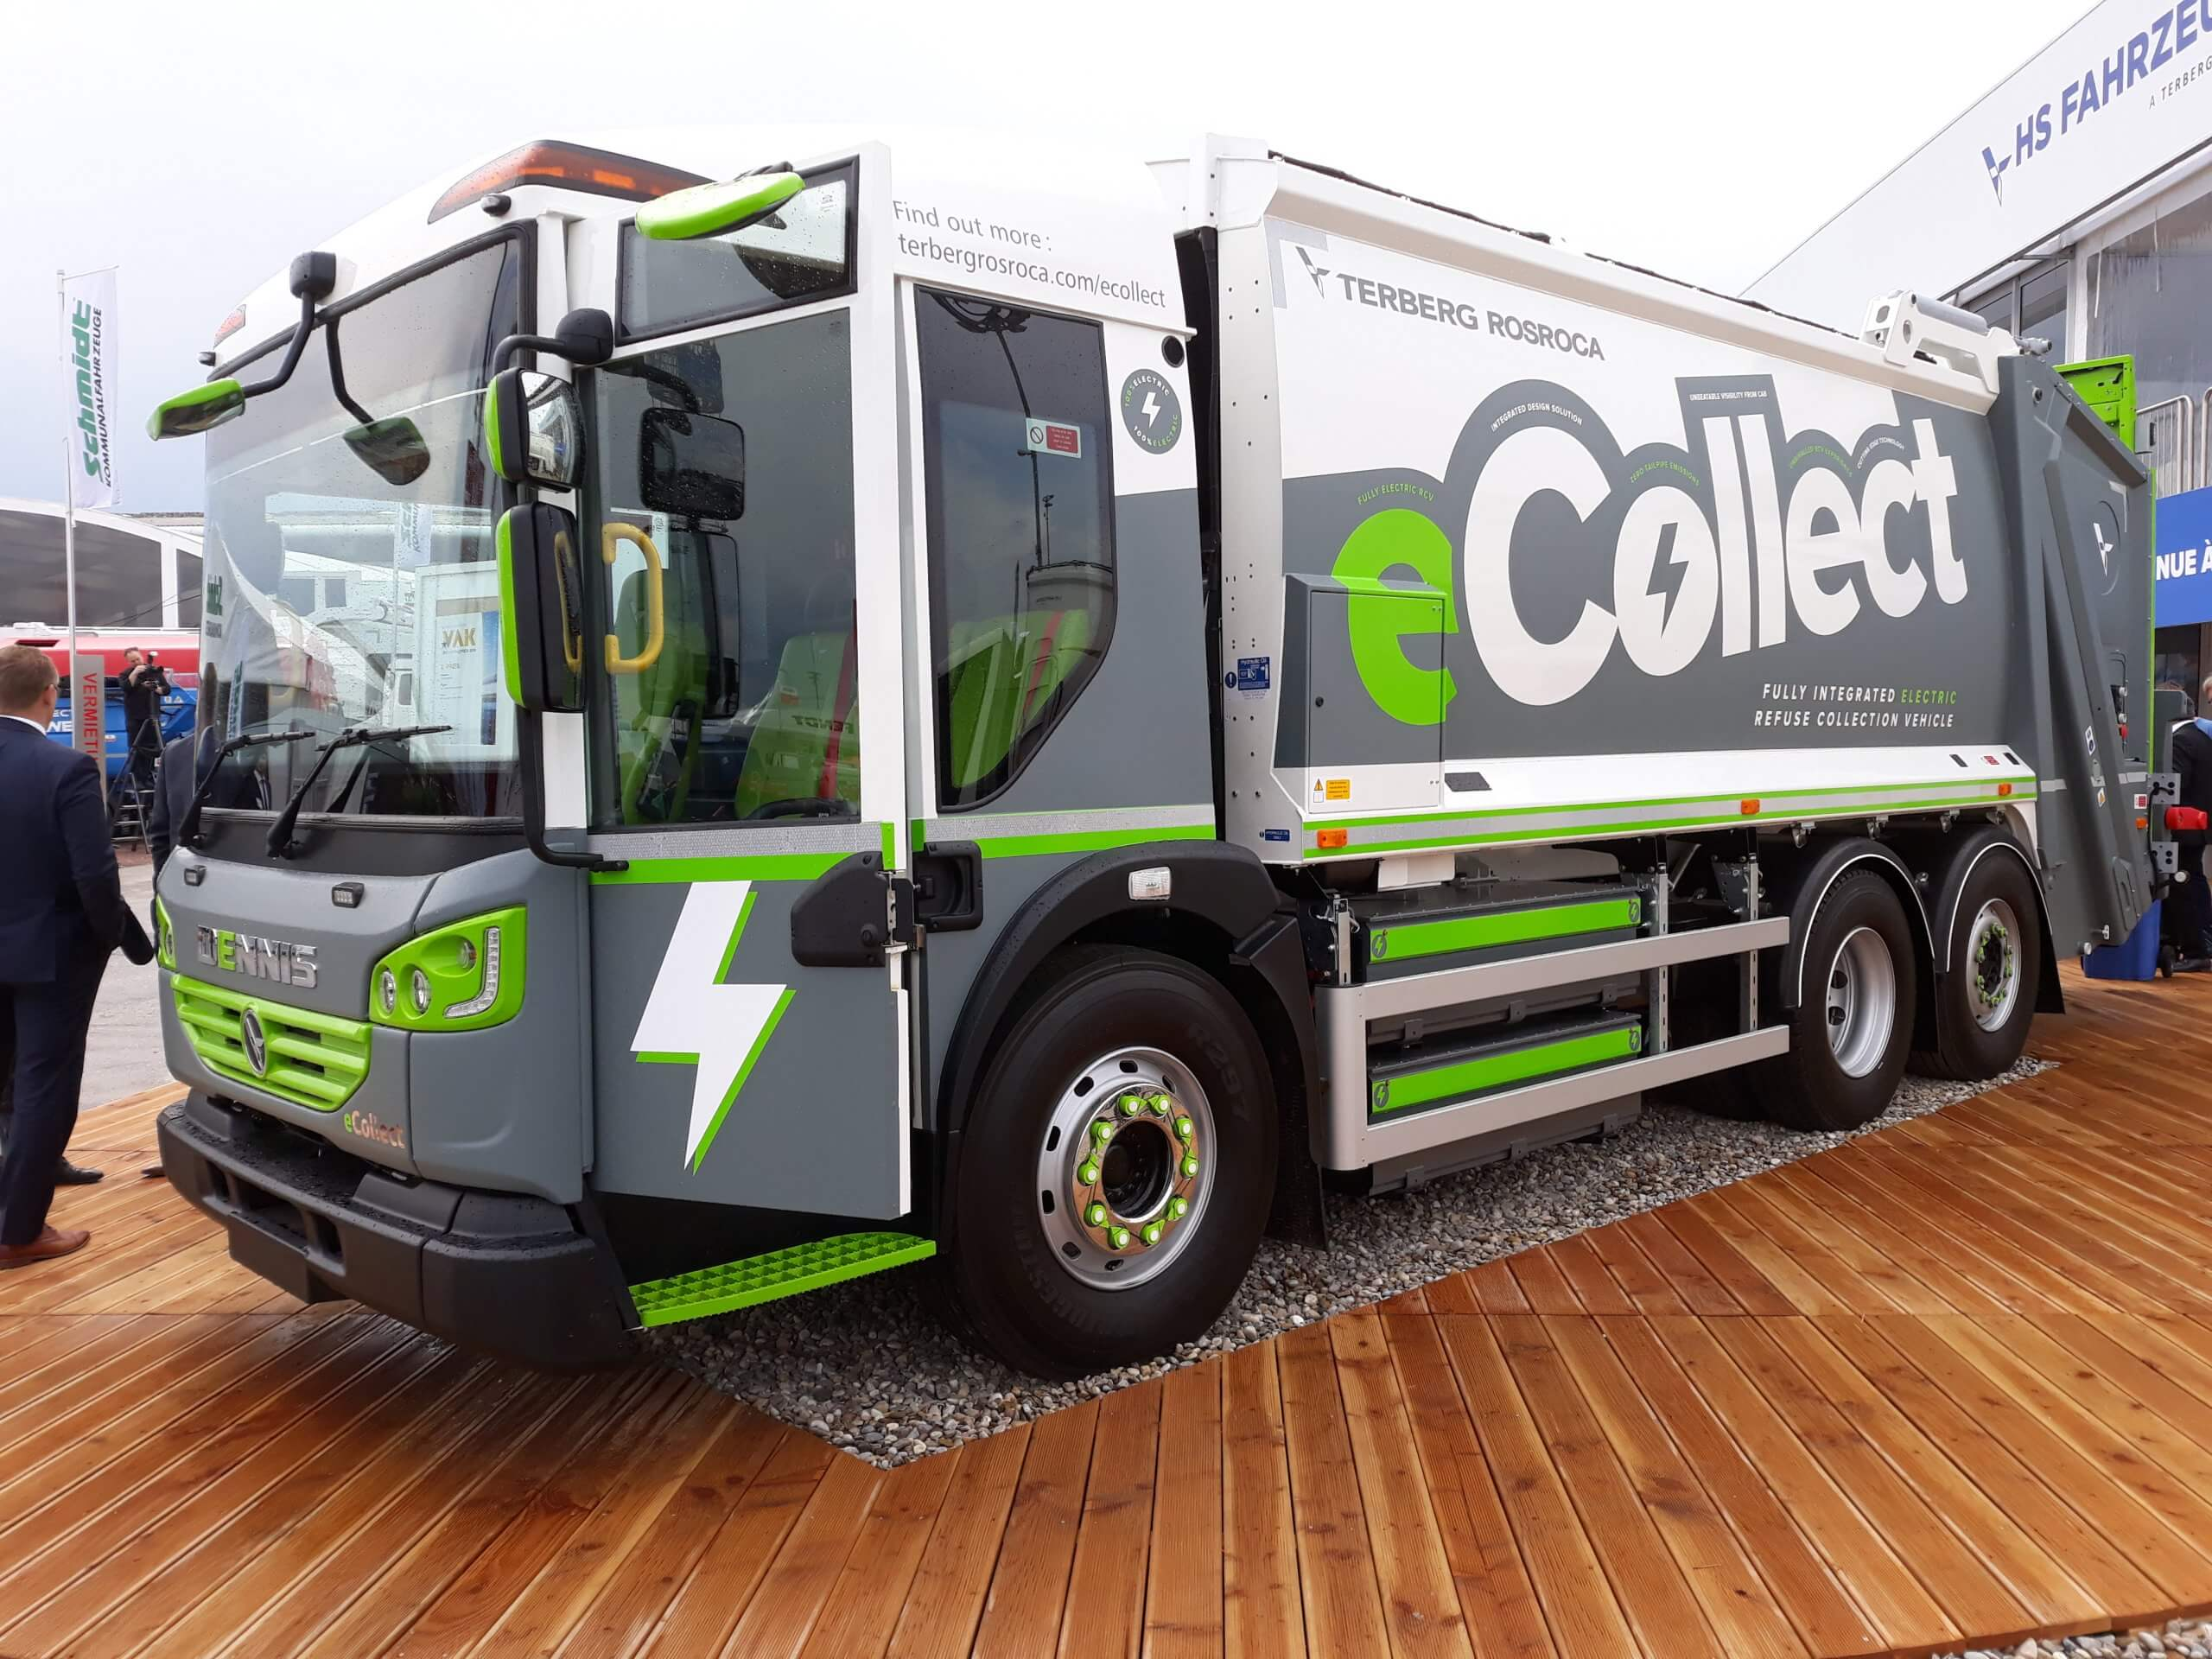 Electric refuse collection vehicle